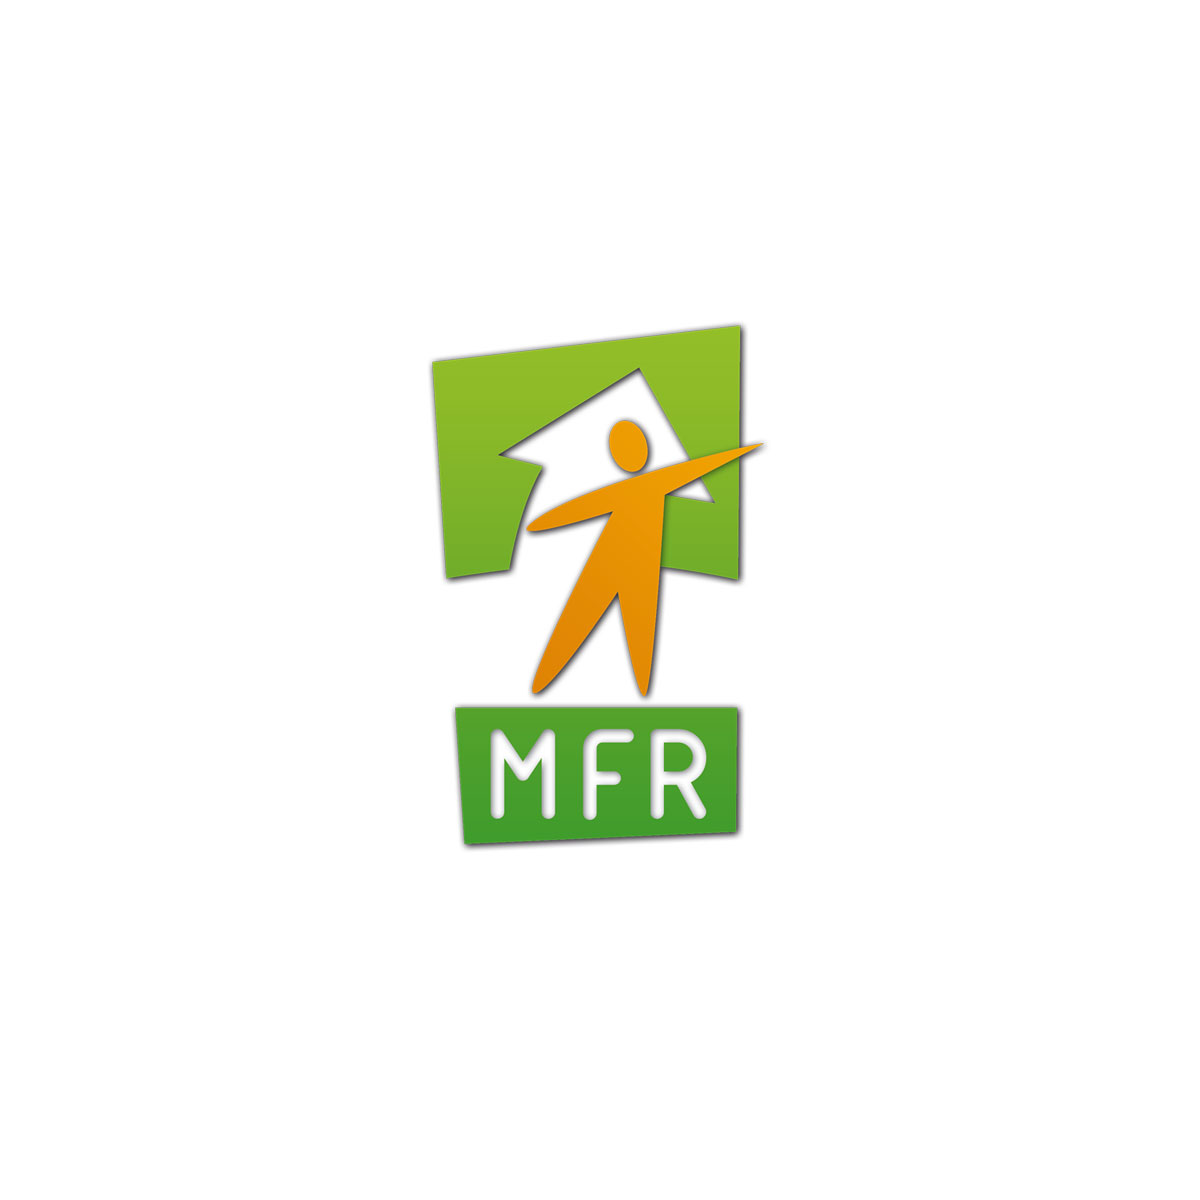 (c) Mfr-aire.org